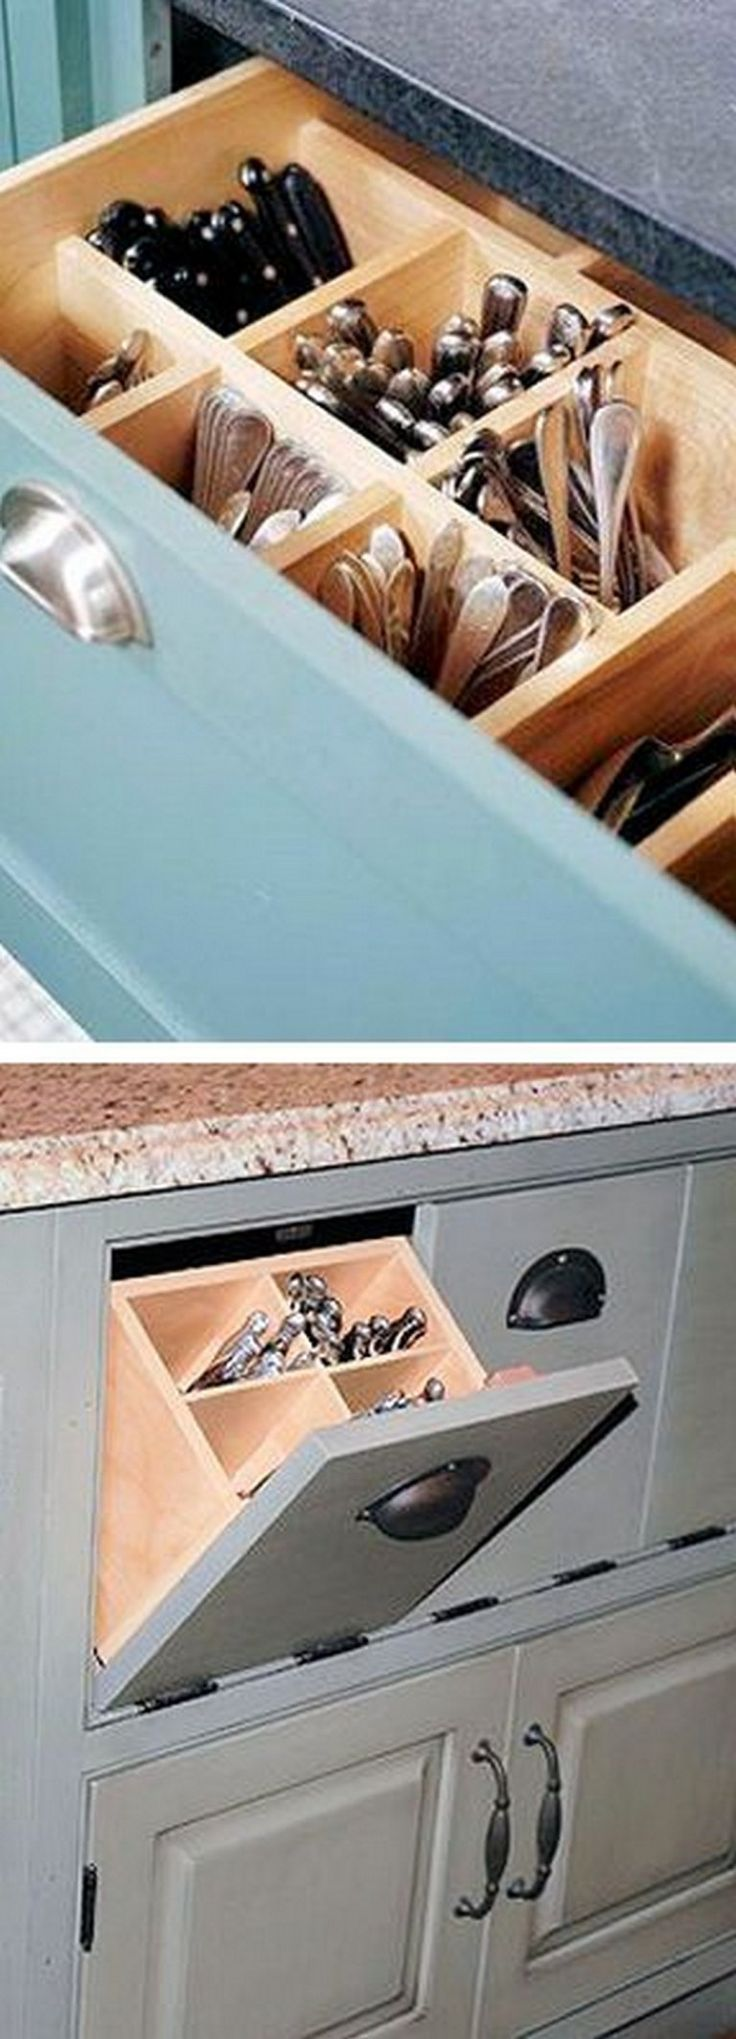 11 best lifehacks for kitchen images on Pinterest | Great ideas ...